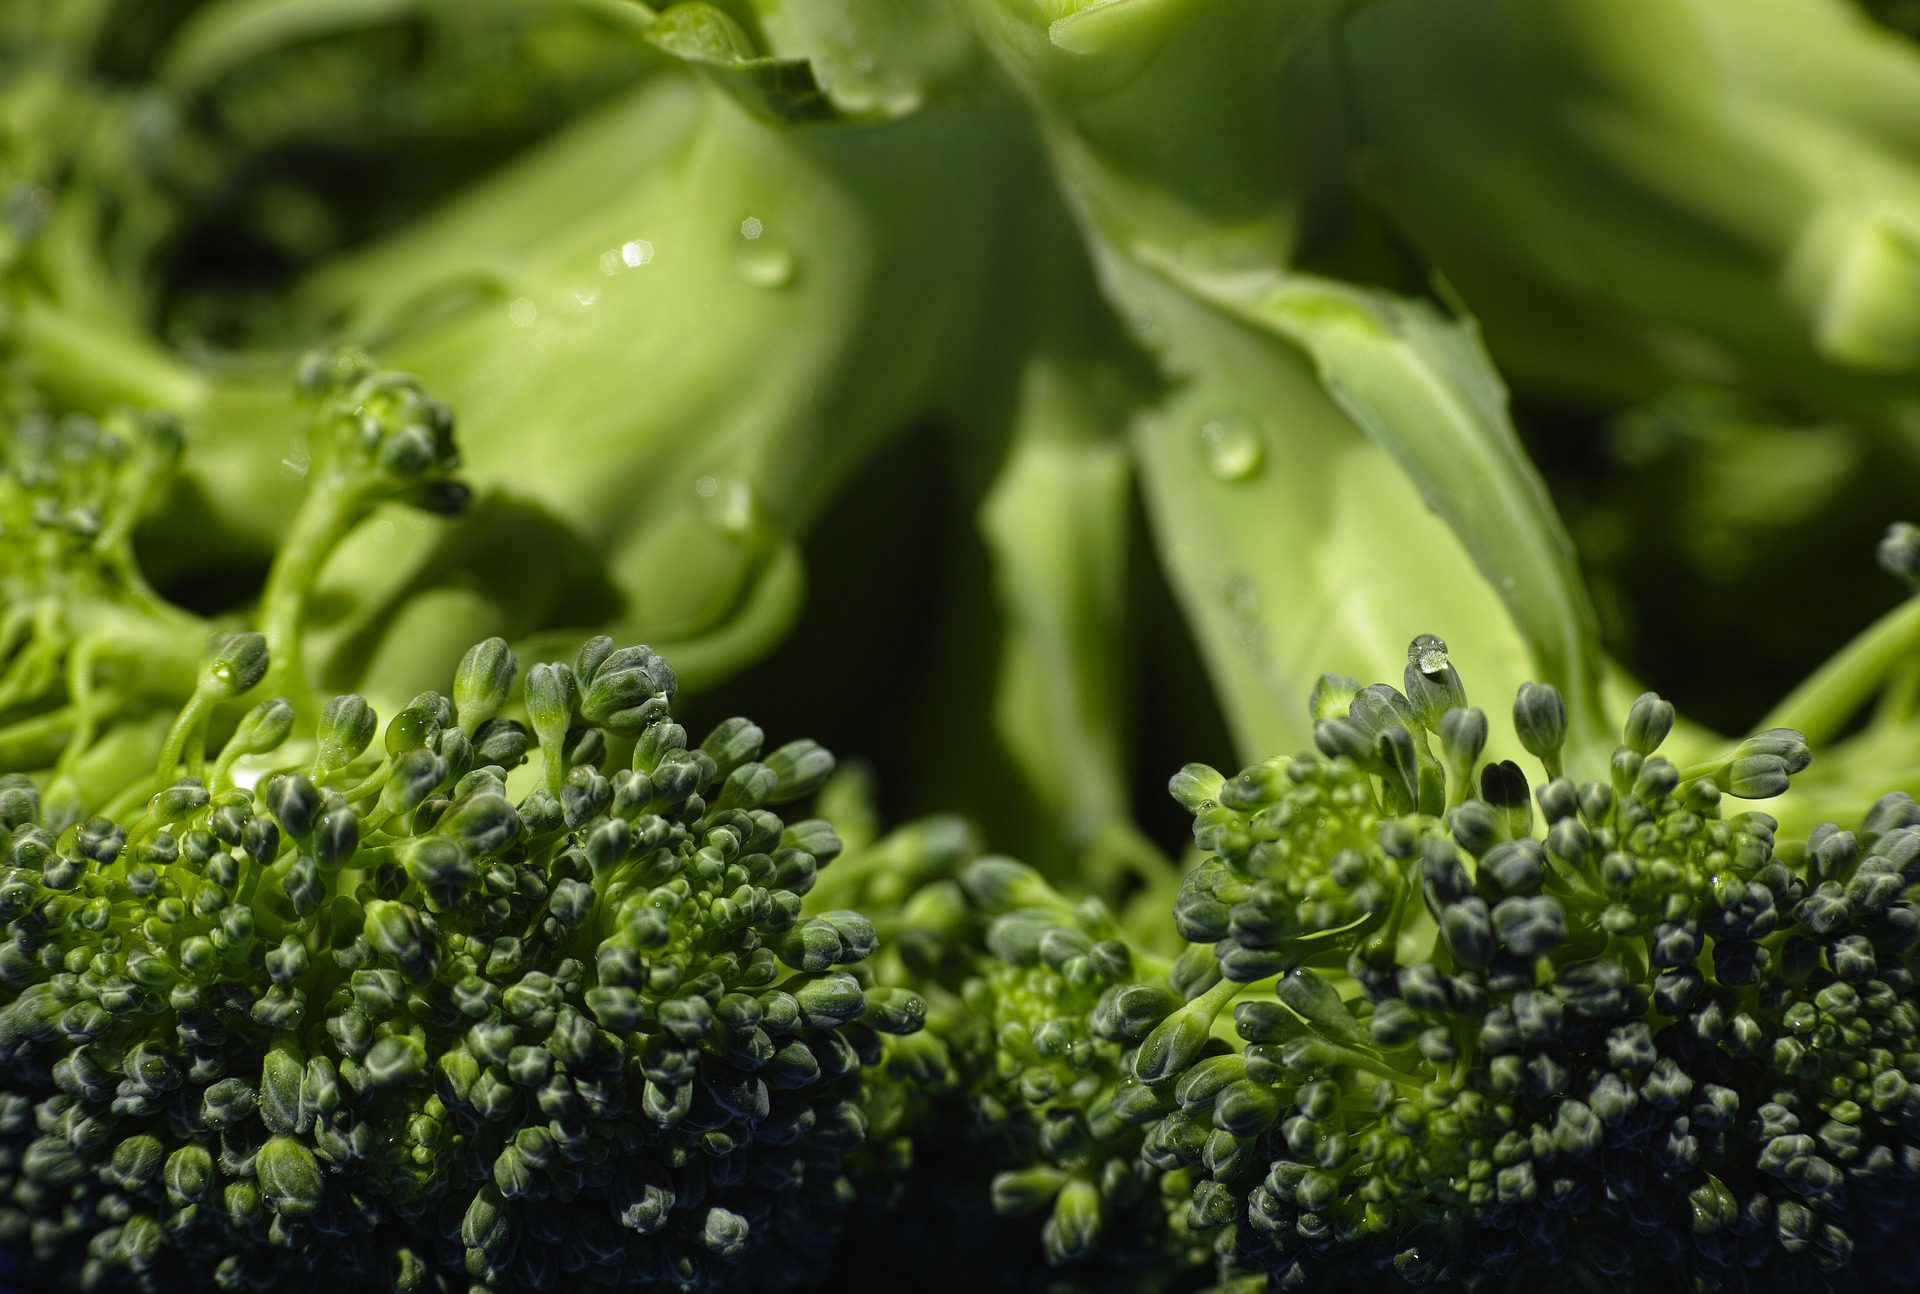 What to eat when you're trying to get pregnant - leafty greens and broccoli which contain follate